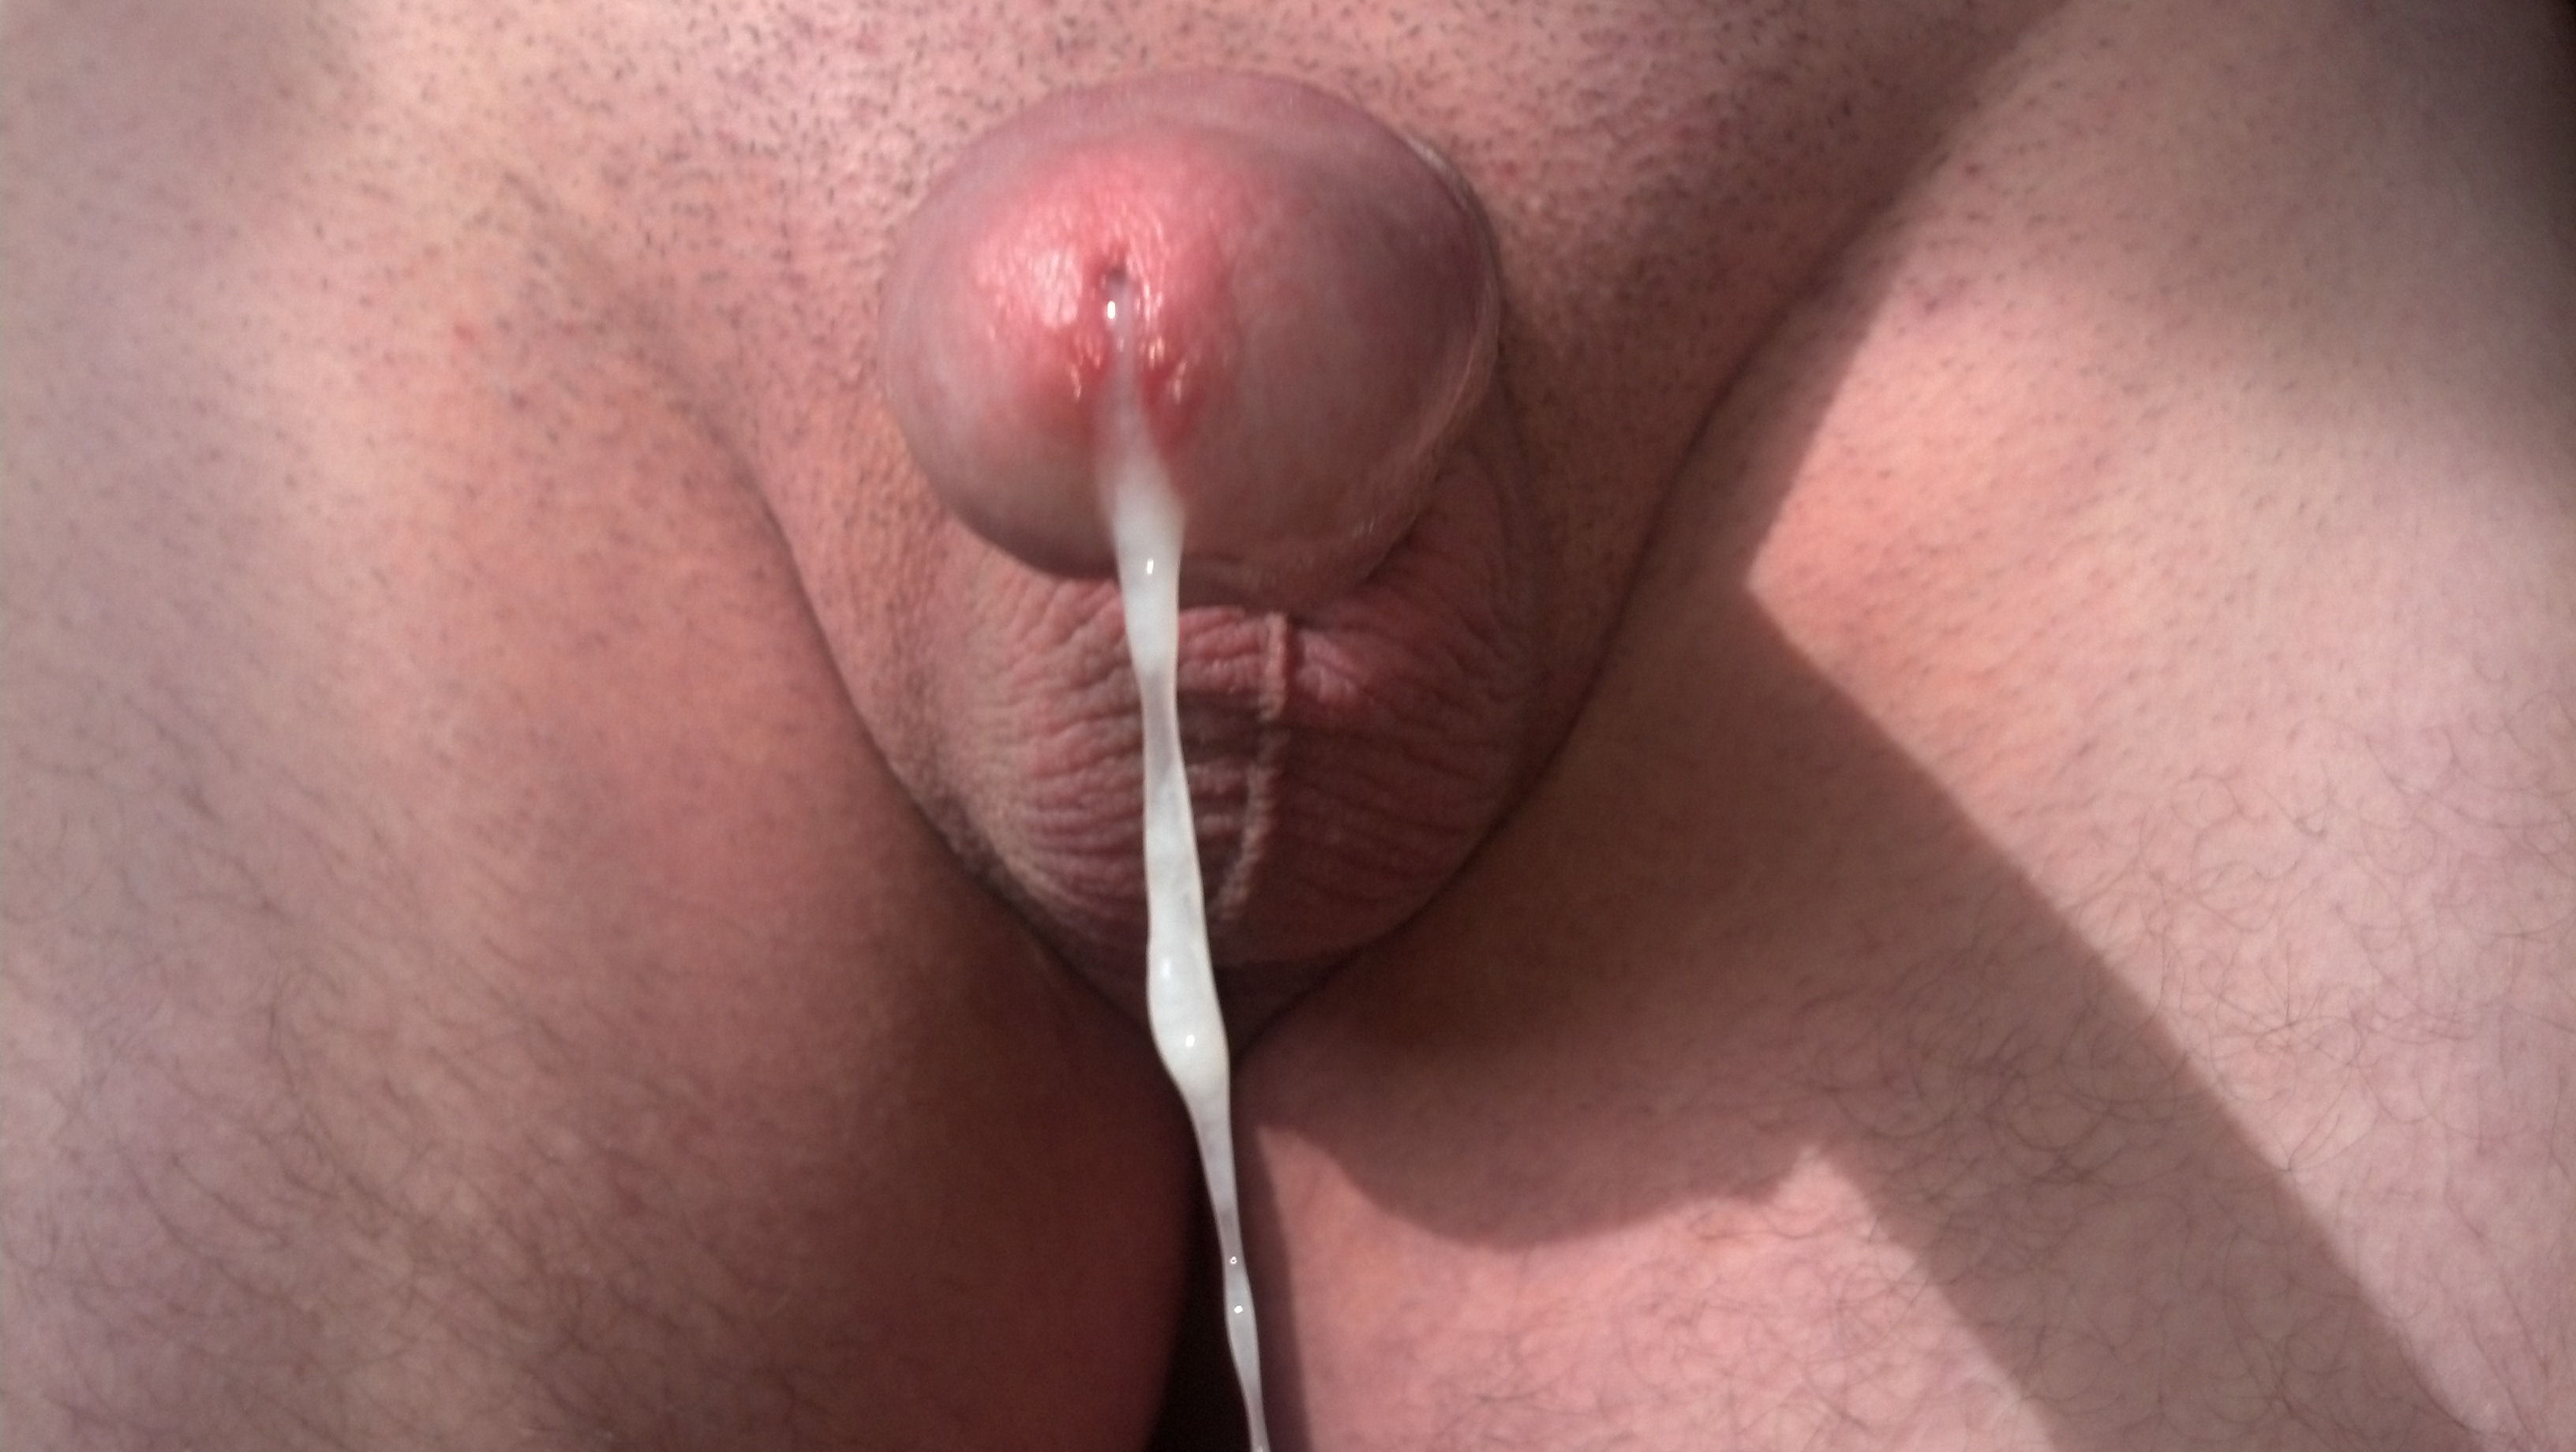 Ejaculation erection male masturbation photo